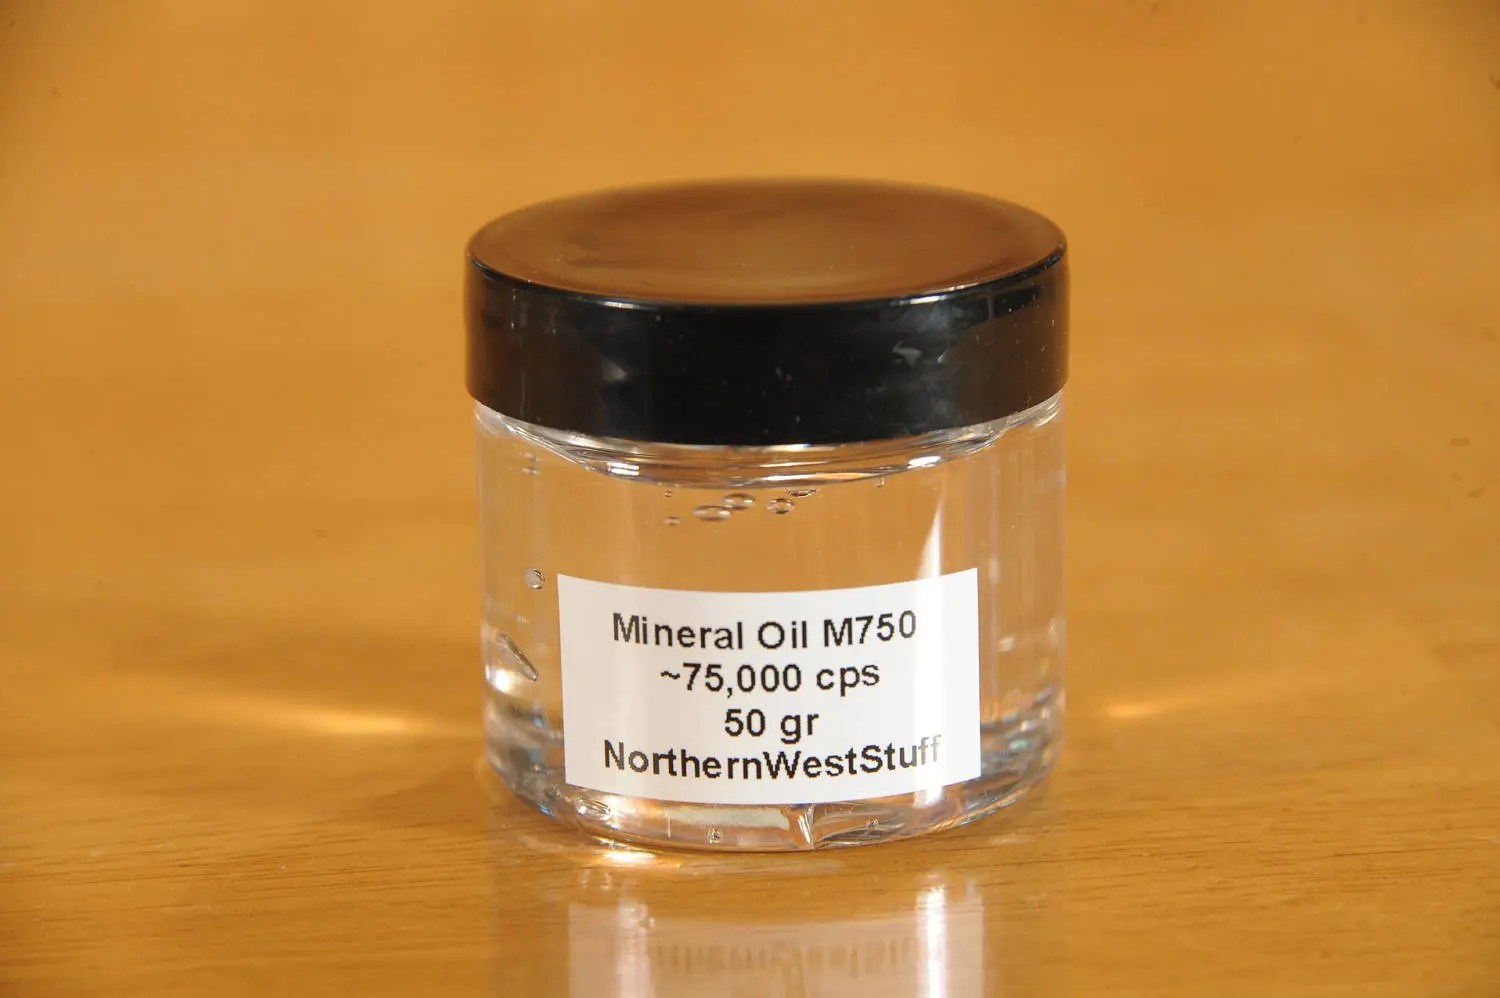 Mineral Oil Mineral Oil Very High Viscosity 75 000 Cps Contact Shop To Request Actual Ship Cost For Multi Items